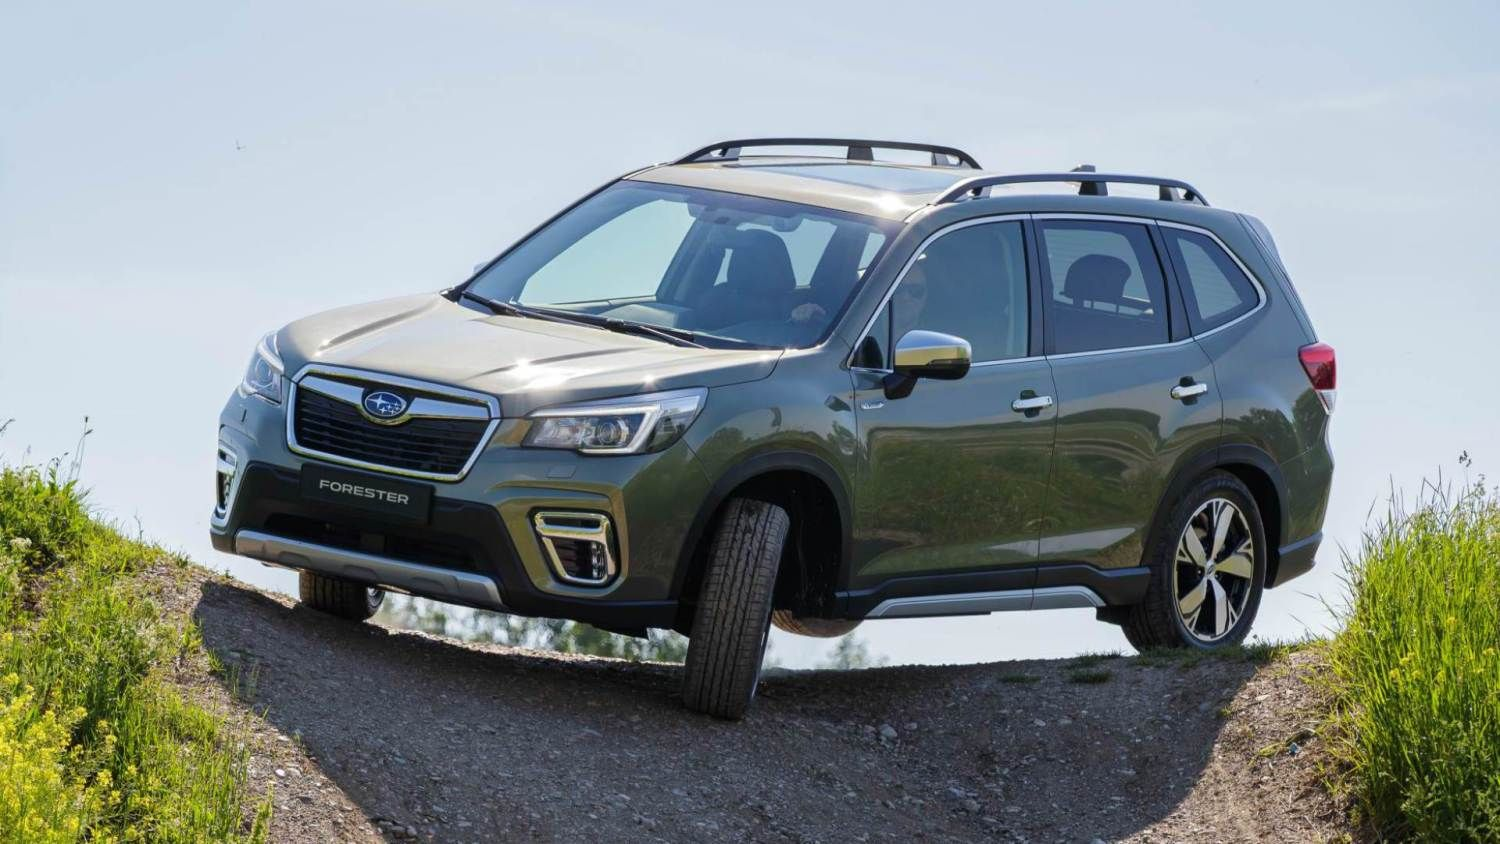 New Subaru Forester launched and it's a hybrid Subaru